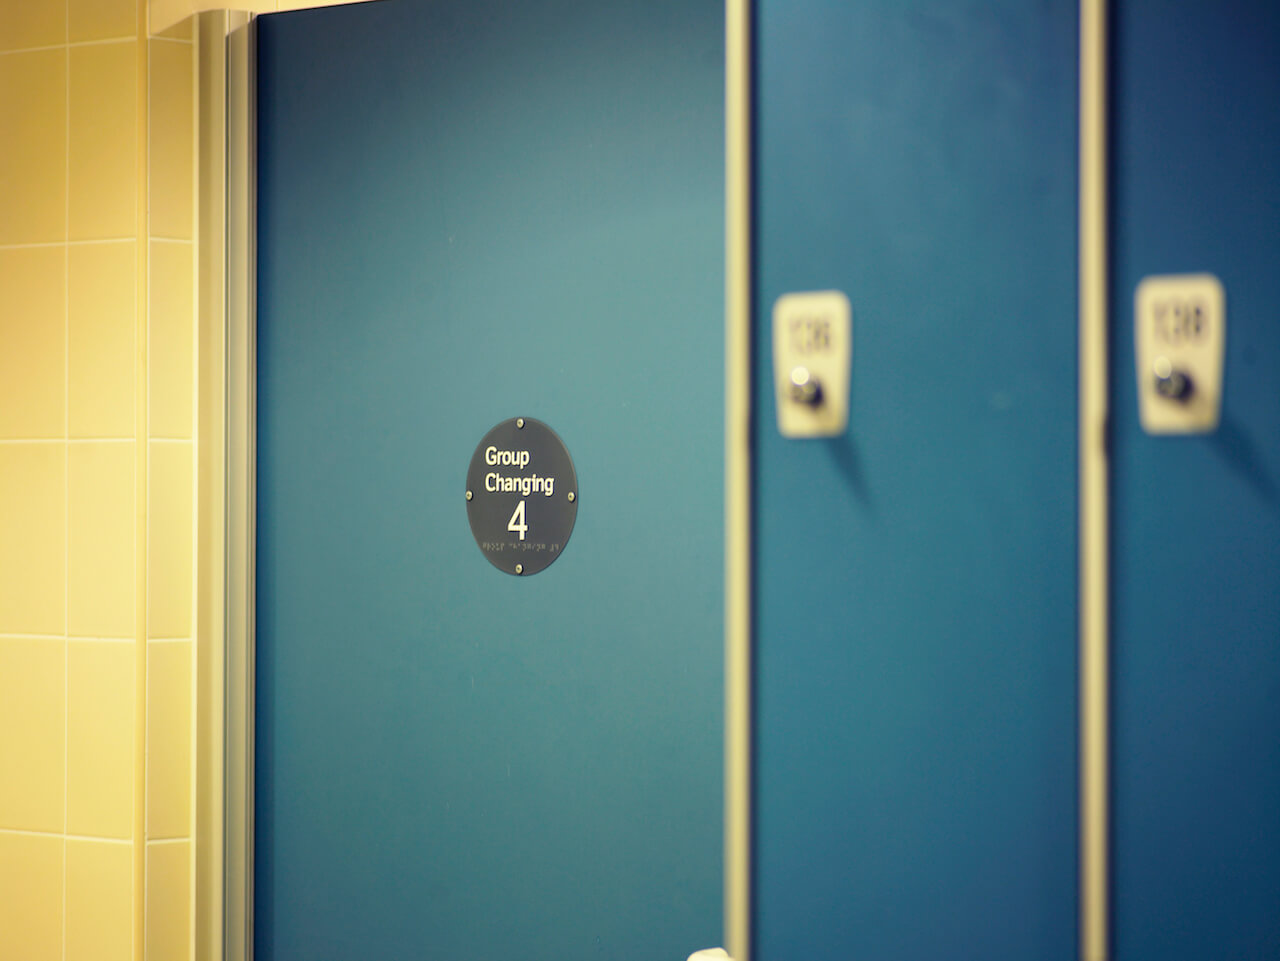 Braille is used on the door signs in this inclusive and accessible wayfinding and signage scheme